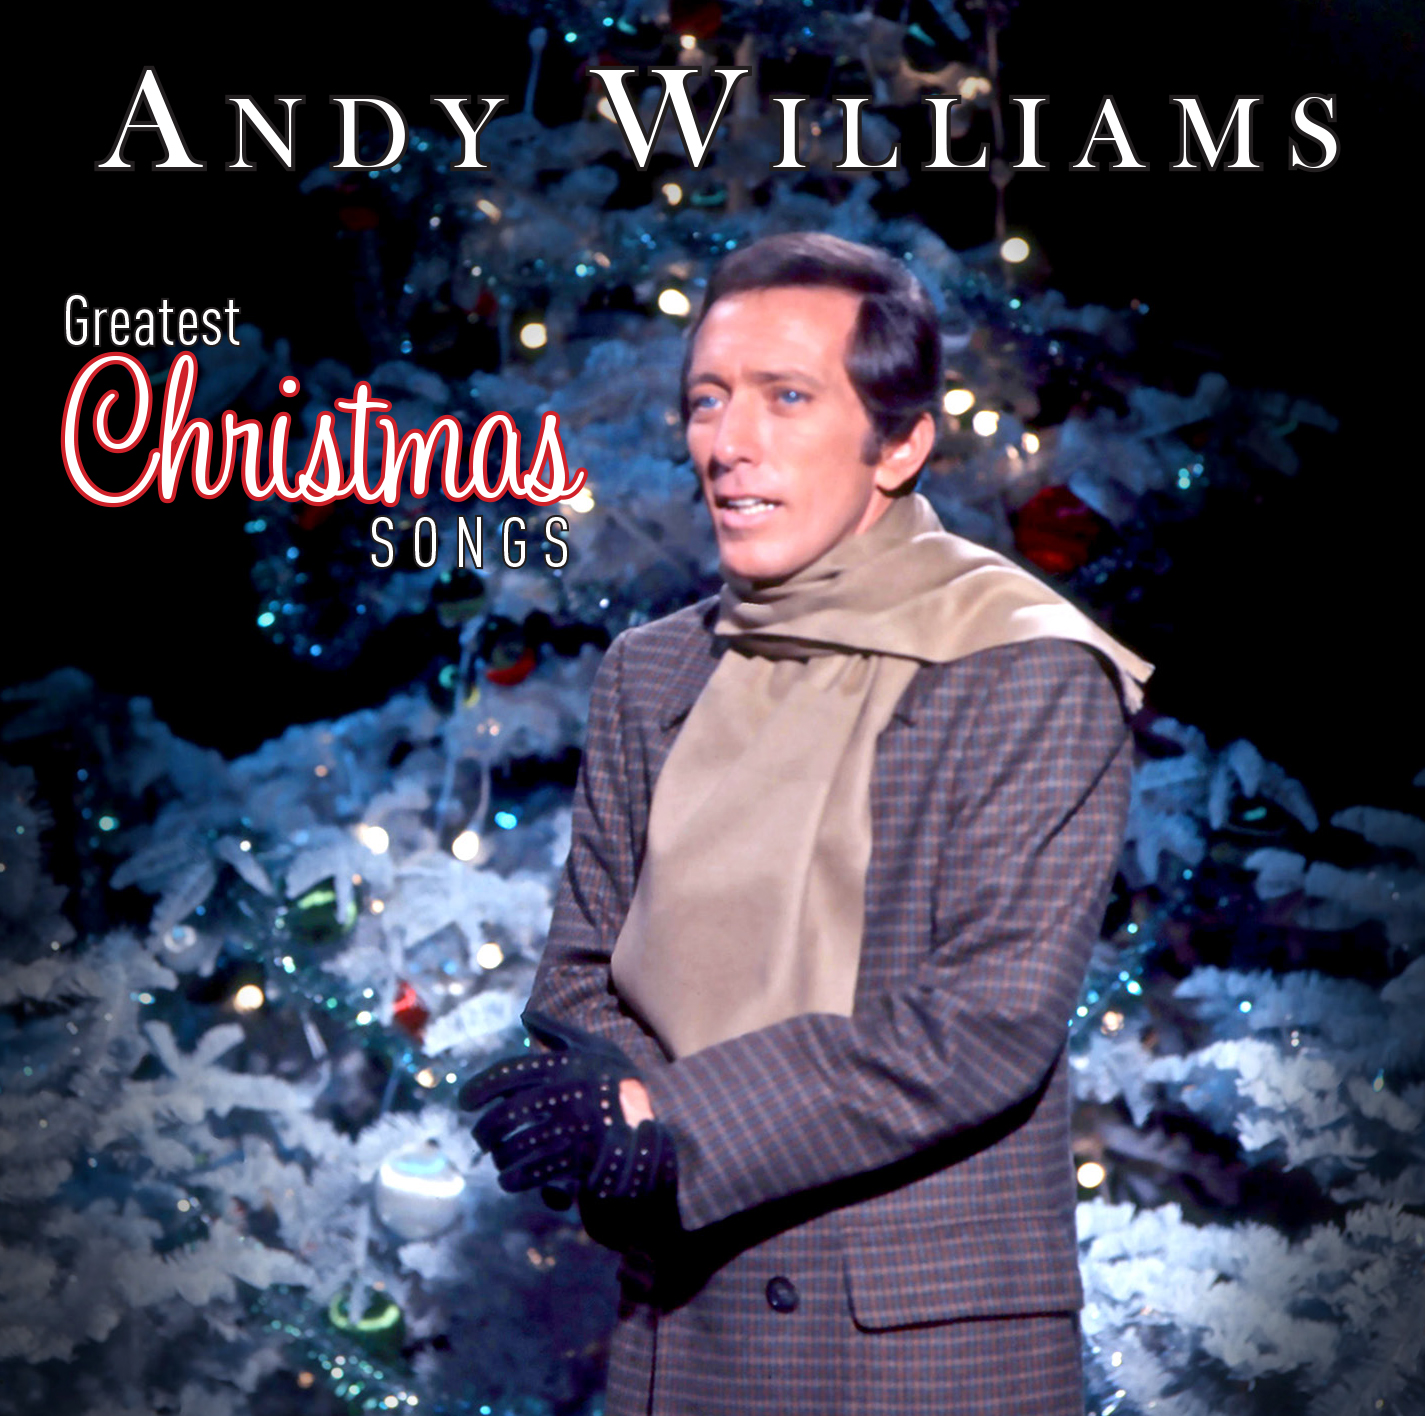 CD: Andy Williams Greatest Christmas Songs